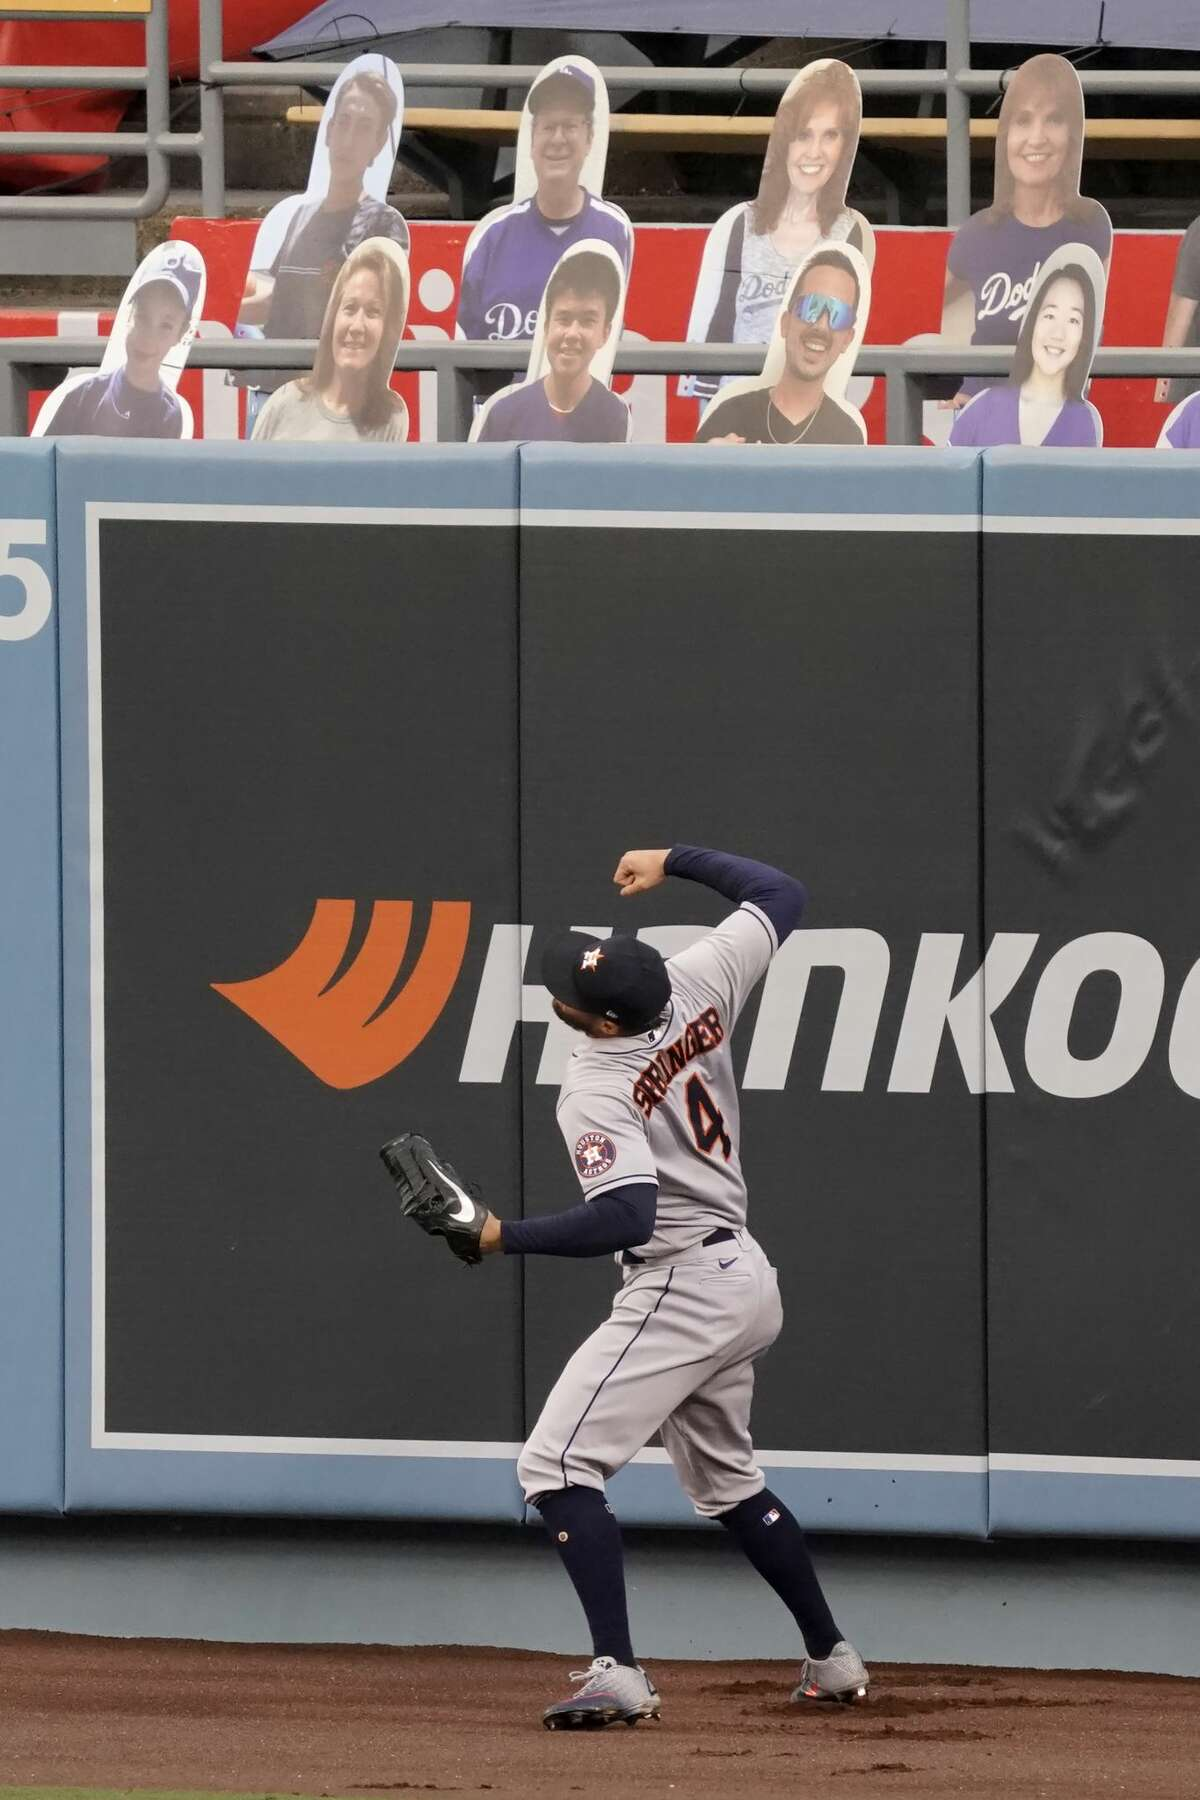 Houston Astros right fielder George Springer reacts as he misses the ball for a two-run home run by Los Angeles Dodgers' Mookie Betts during the fifth inning of a baseball game in Los Angeles, Sunday, Sept. 13, 2020. (AP Photo/Alex Gallardo)